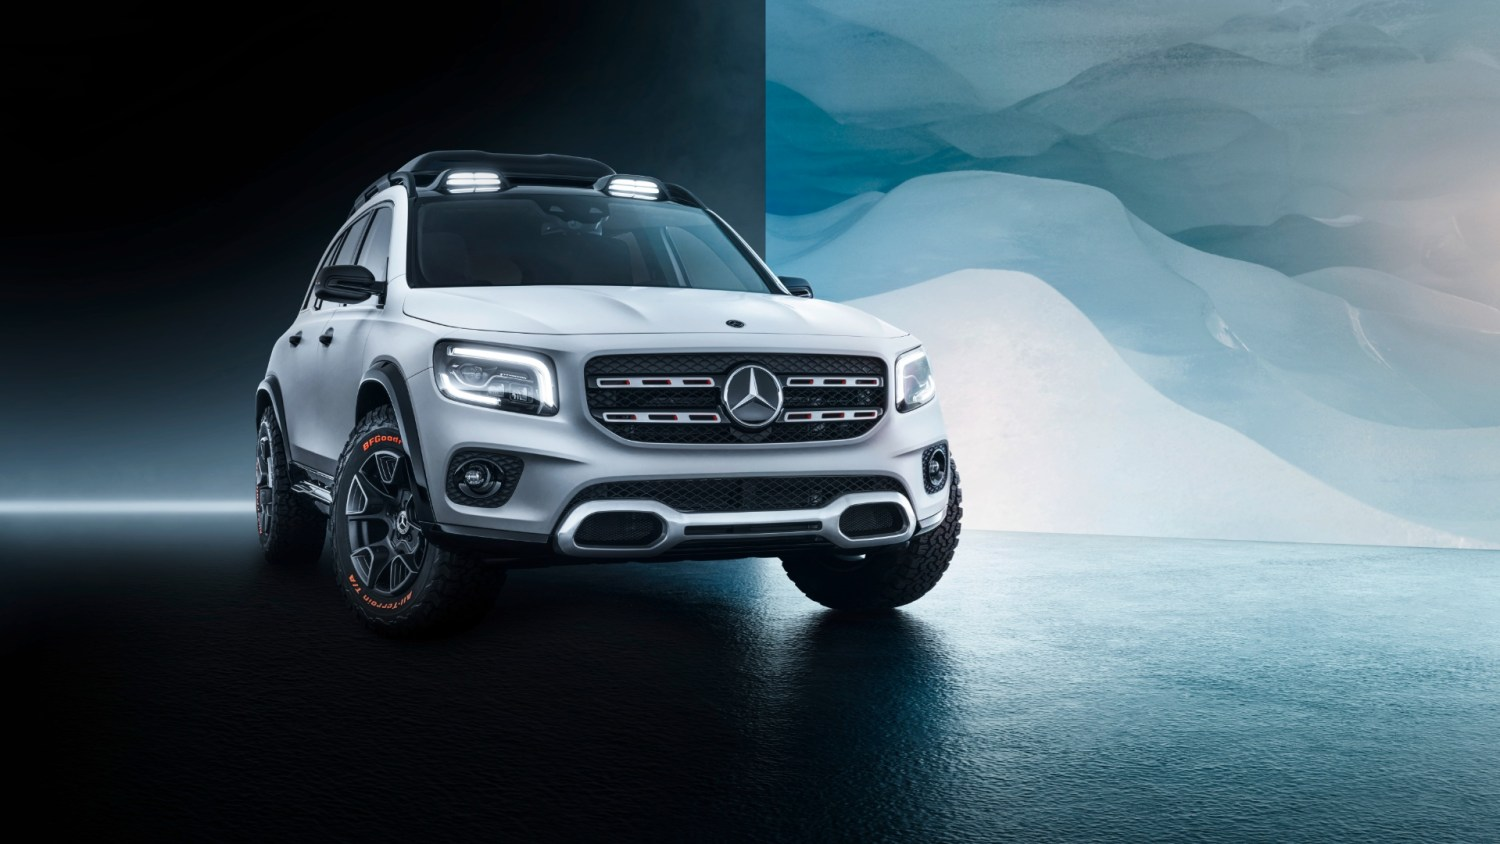 Mercedes-Benz GLB concept previews 'robust' small SUV